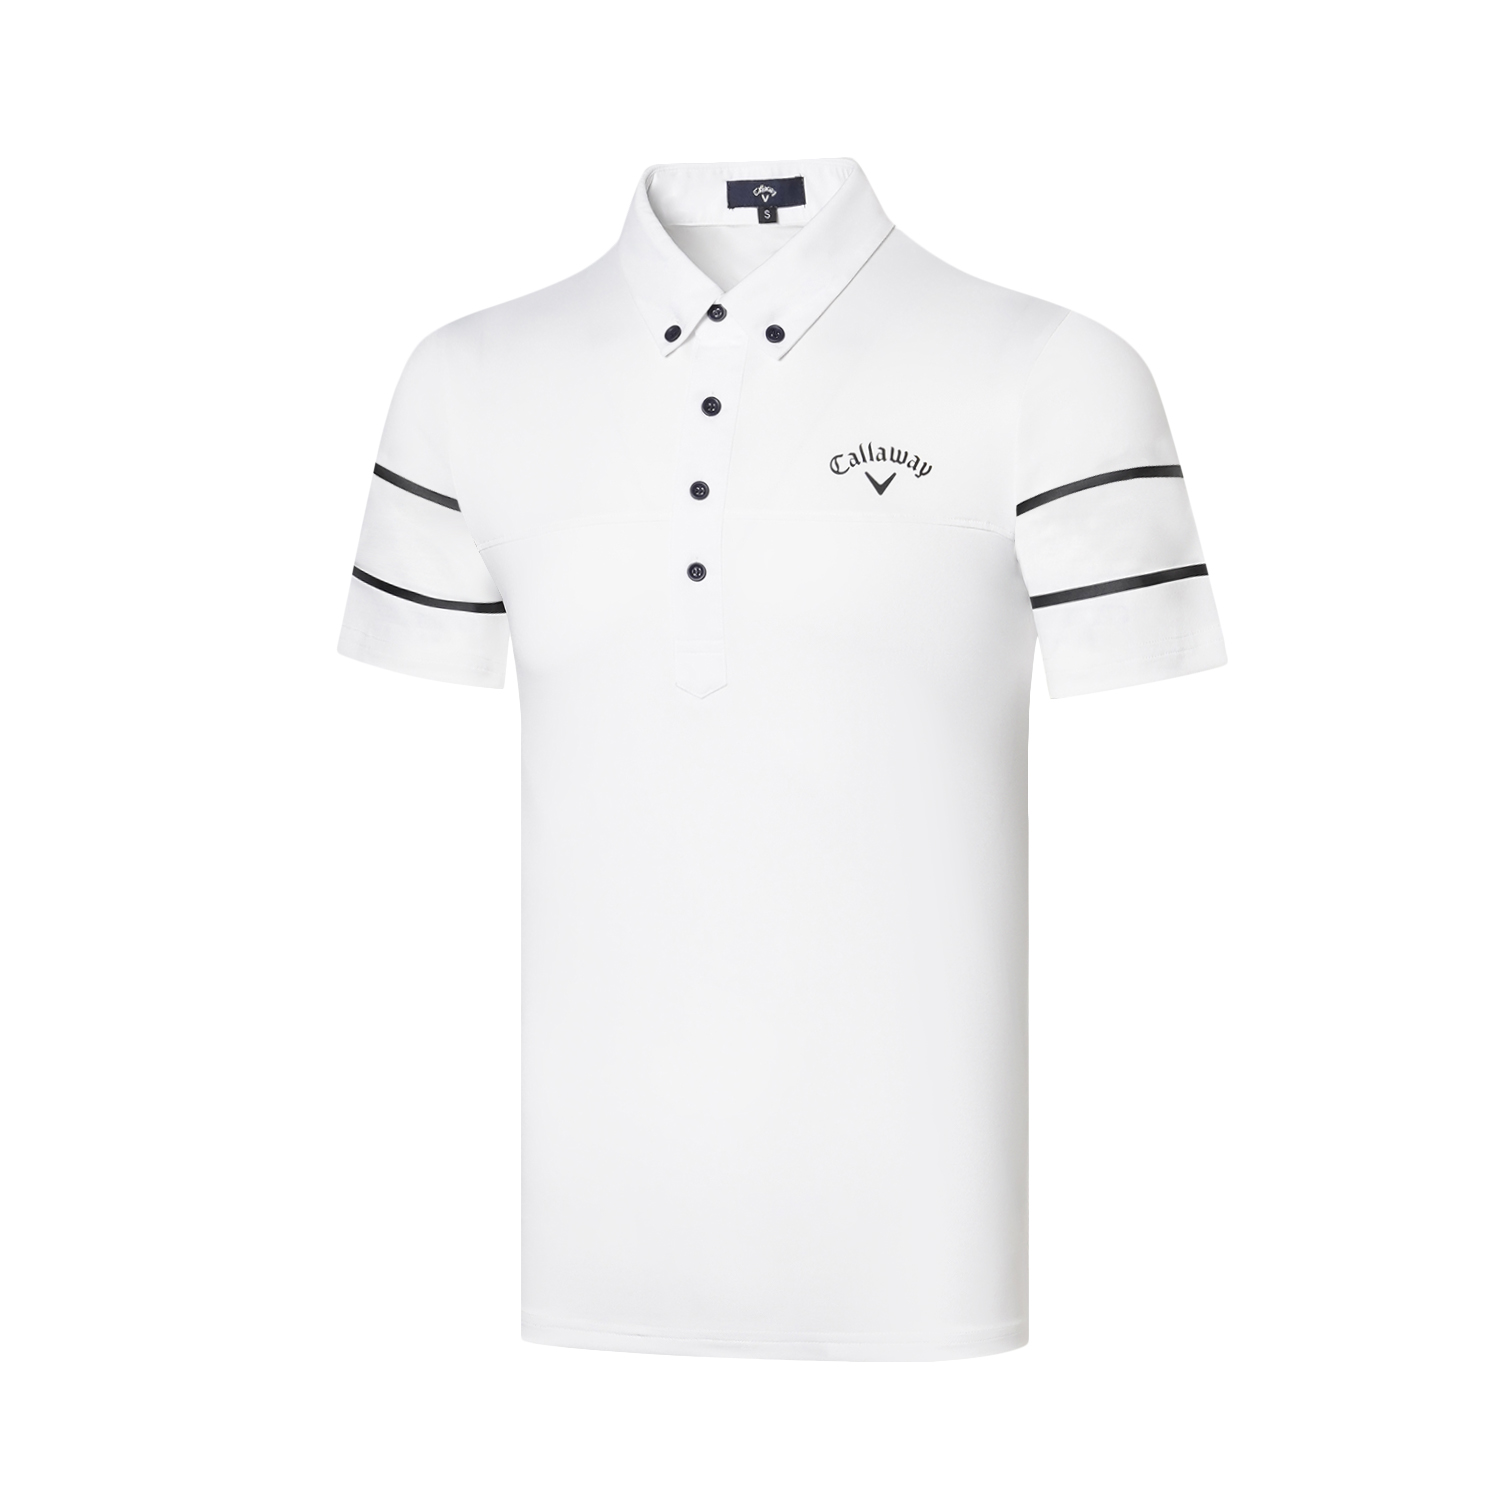 2020new Spring Men Golf Shirt Short Sleeve Quick Dry Turndown Collar Golf Clothing TA